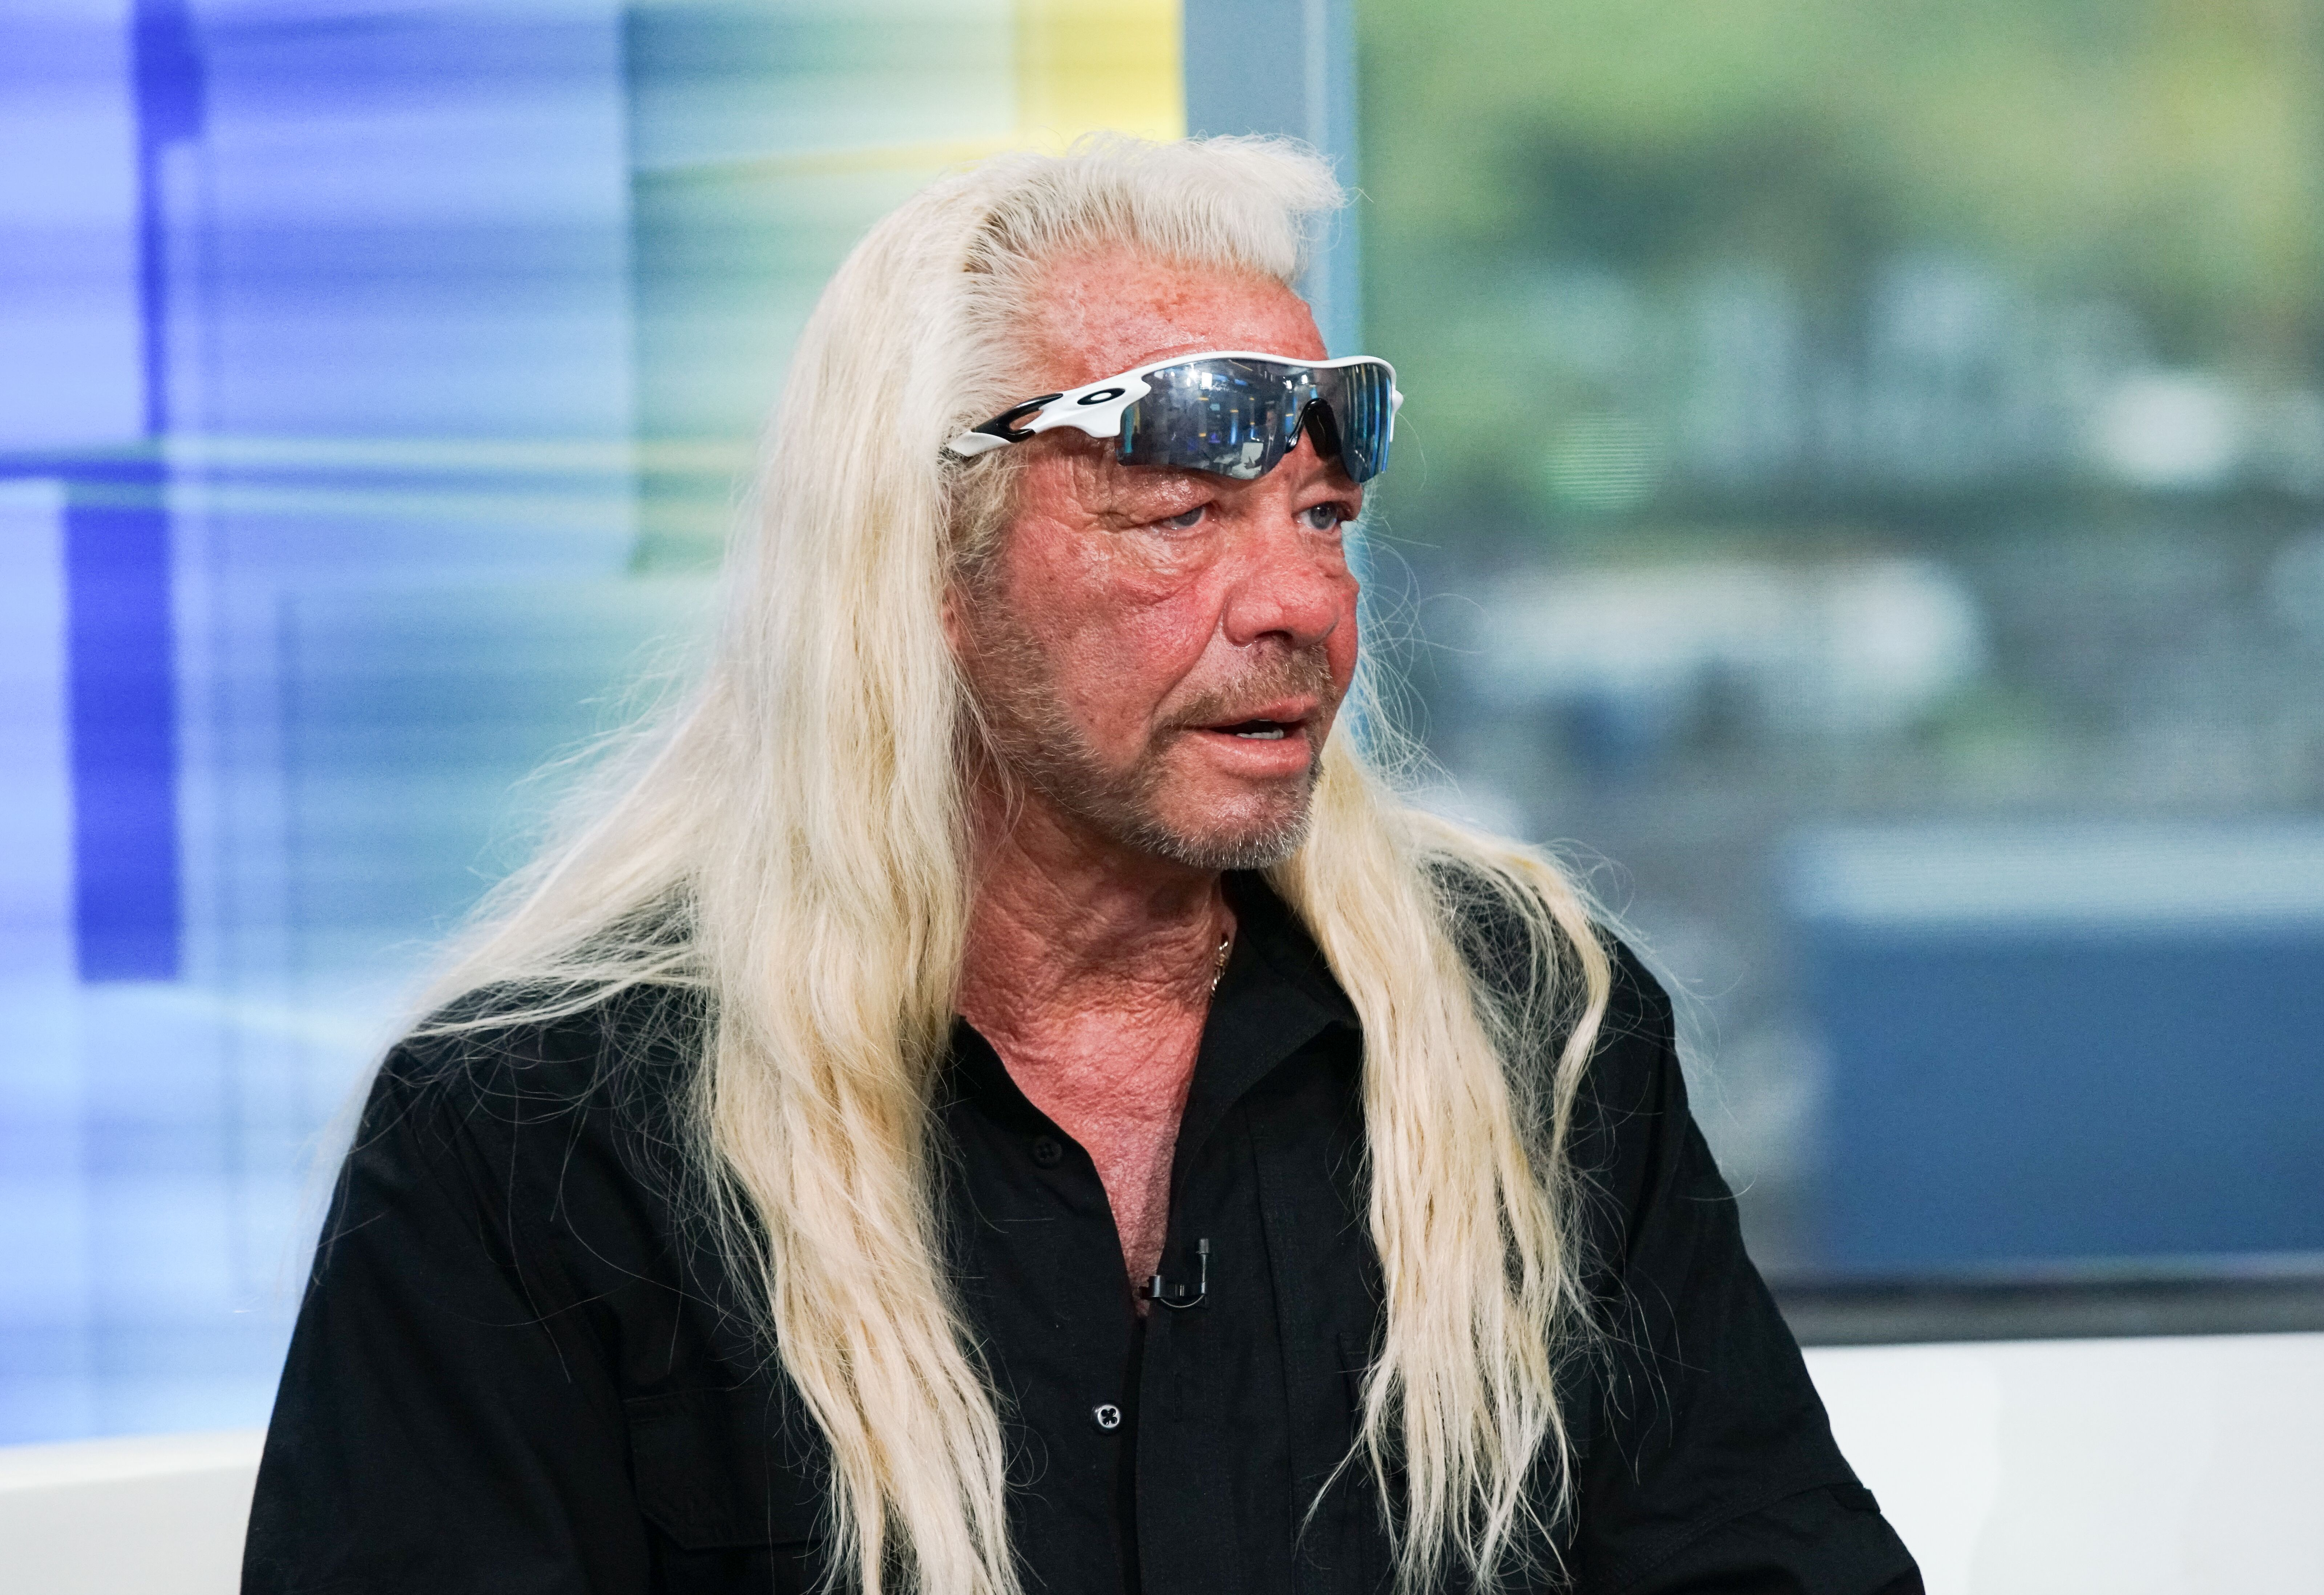 """:TV personality Duane Chapman aka Dog the Bounty Hunter visits """"FOX & Friends"""" at FOX Studios on August 28, 2019 in New York City 